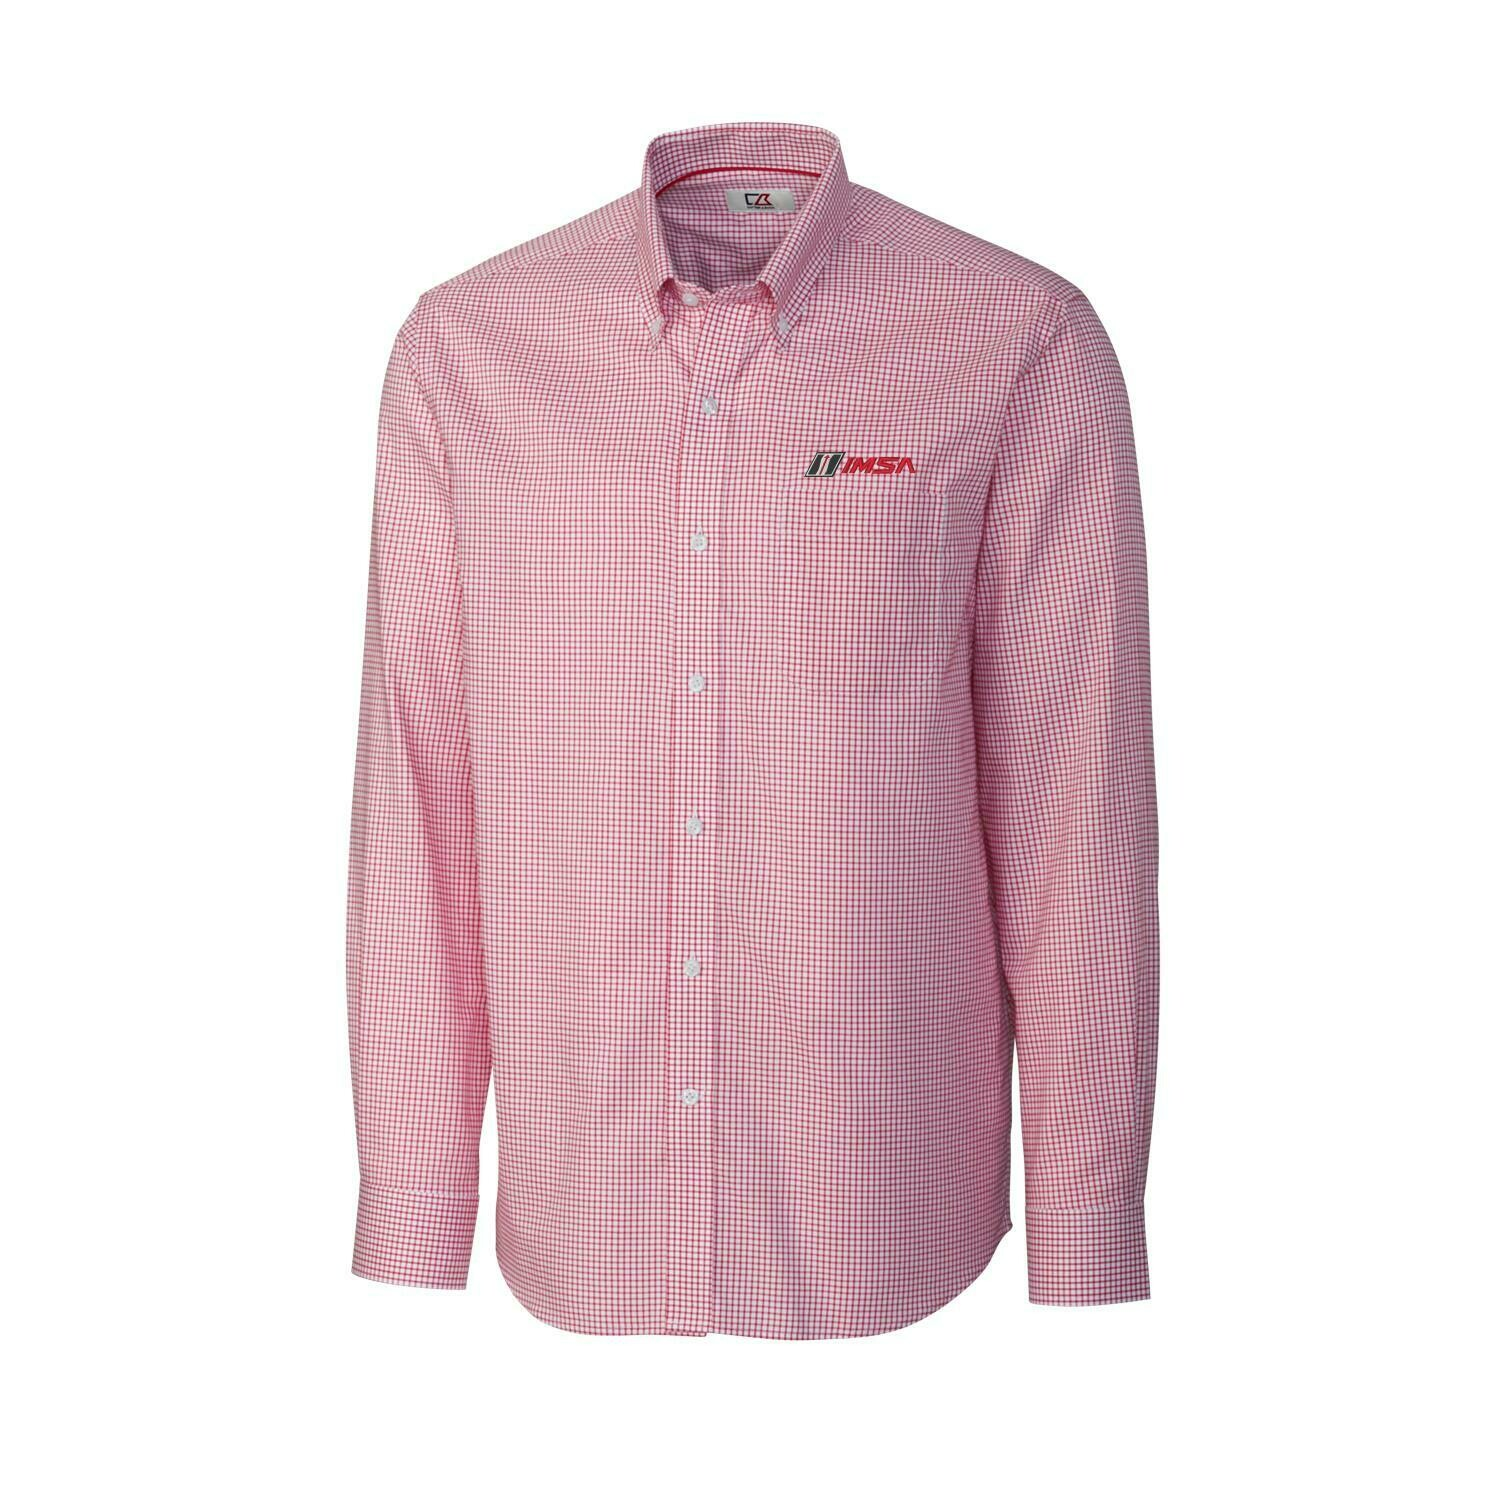 L/S Epic Care Tattersall